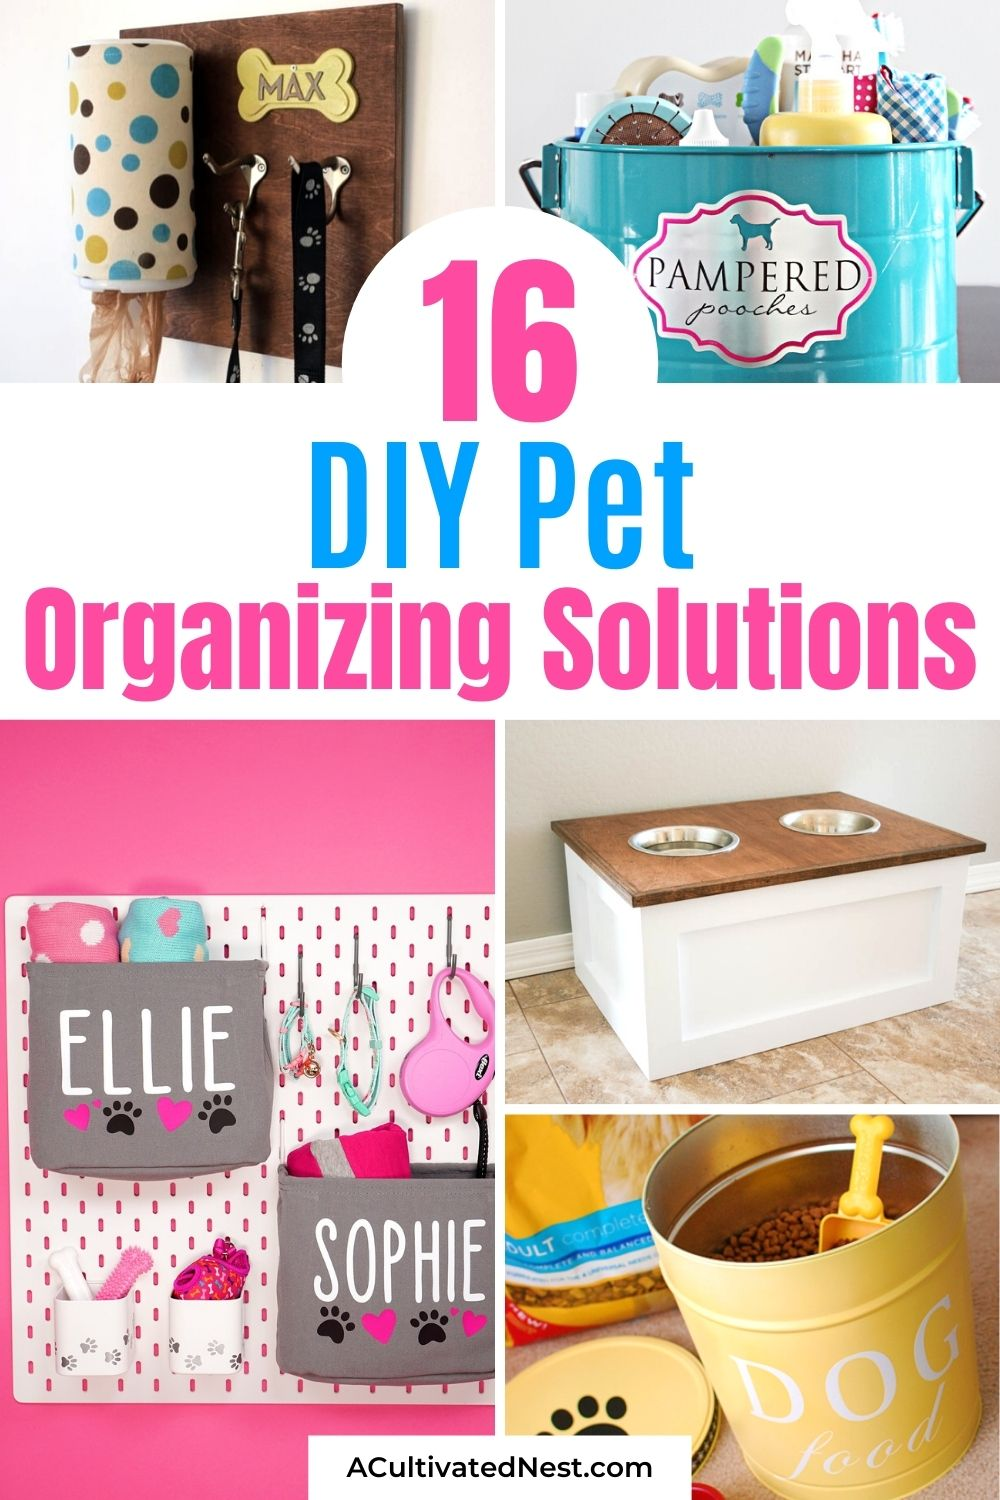 16 Brilliant DIY Pet Organizing Solutions- If your dog or cat's stuff is all over your home, you need these cute and clever DIY pet organizing solutions! There are so many easy ways to get your pets organized! | organize dog toys, organize cat treats, organize pet supplies, #organizing #diyOrganization #petOrganization #diyOrganizers #ACultivatedNest